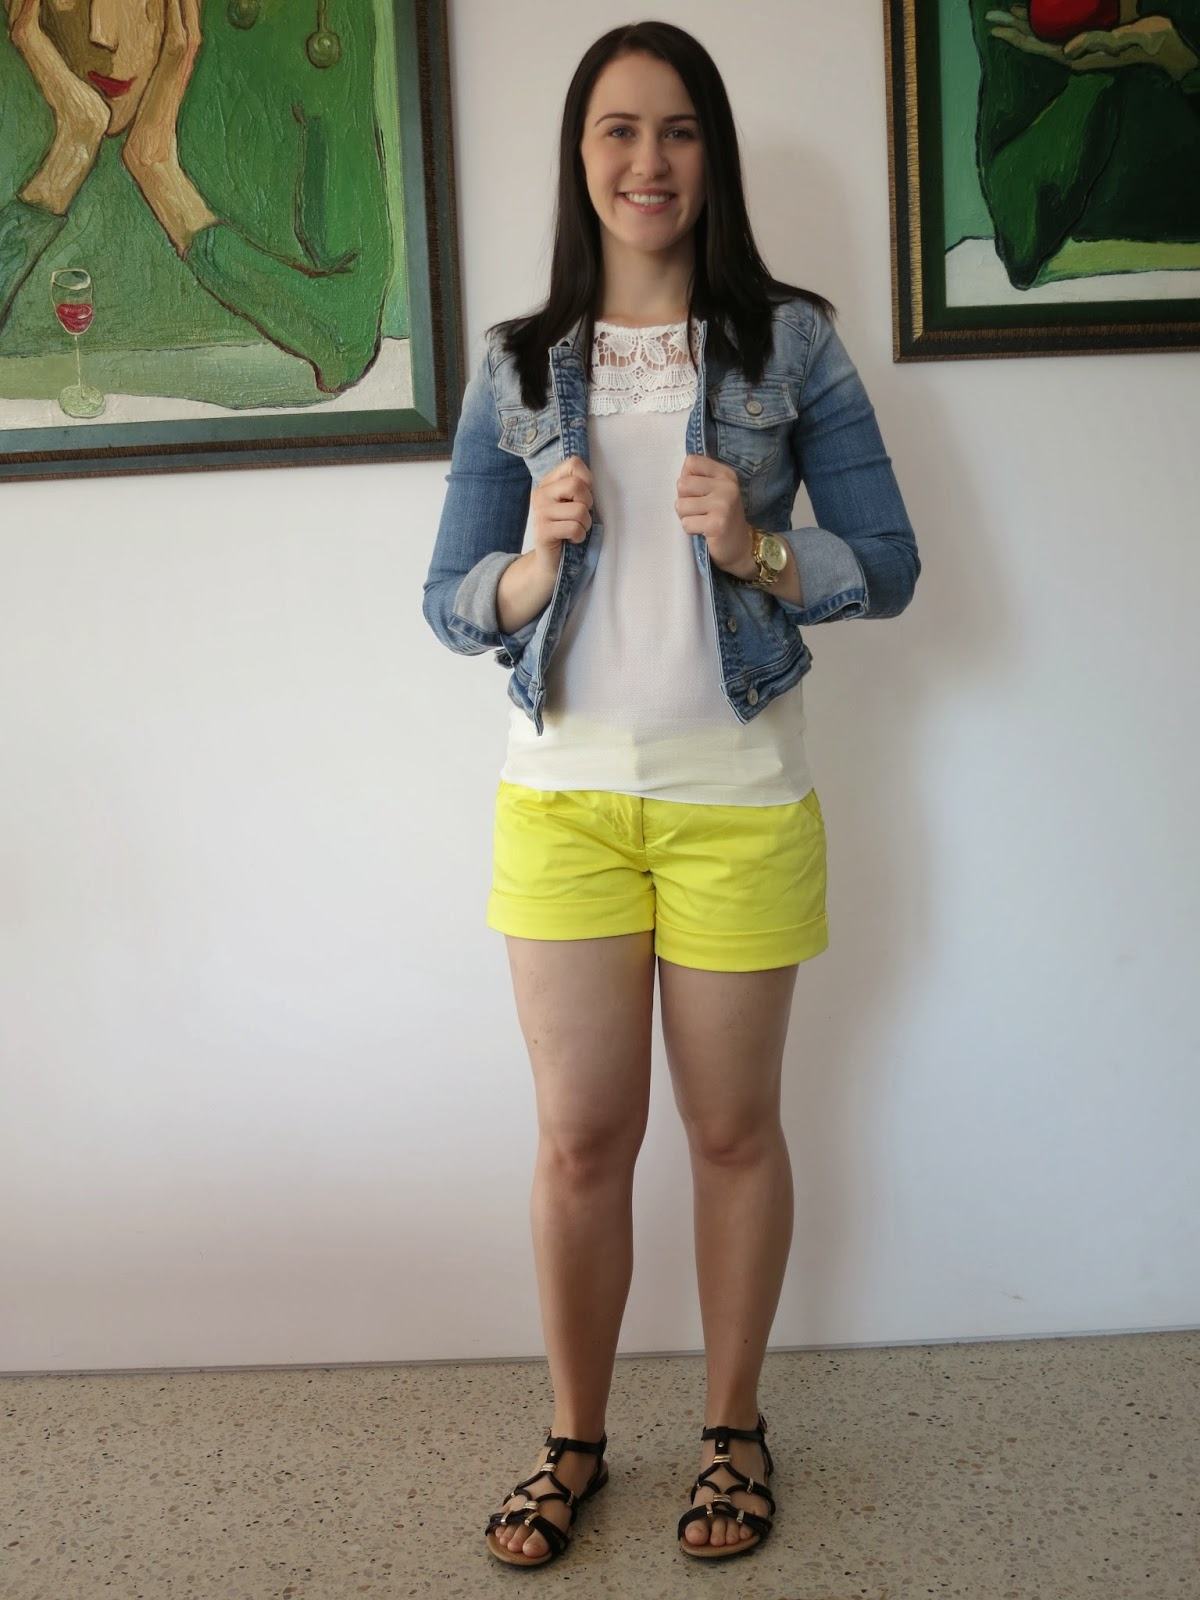 petite girl outfit, petite outfit, everyday outfit, summer outfit, bright yellow shorts, denim jacket, black and gold sandals and bag